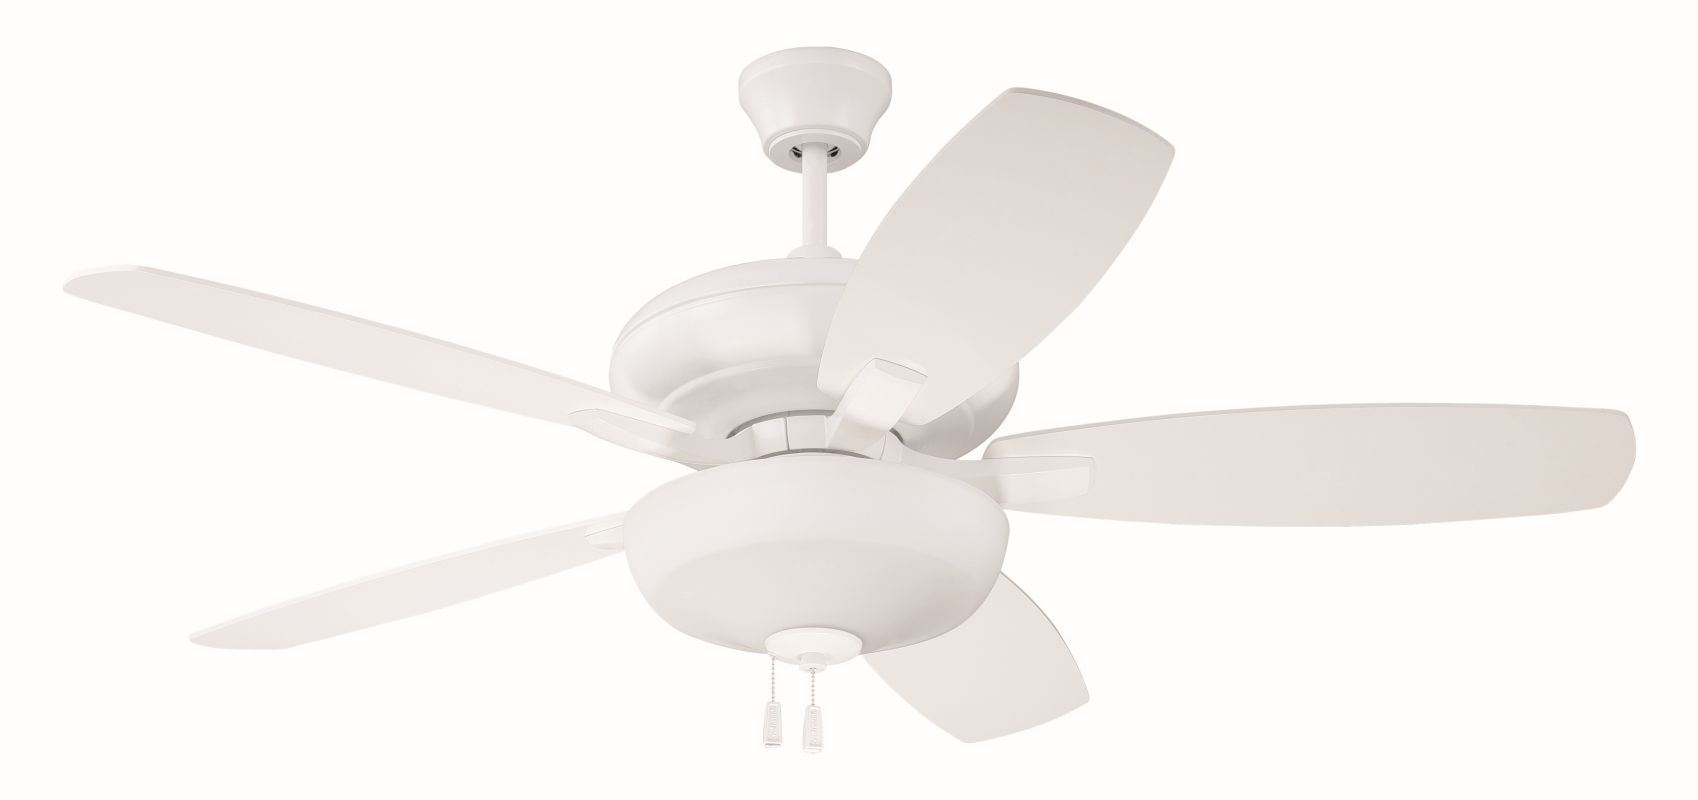 Craftmade FZA525C1 Forza 52&quote 5 Blade Indoor Ceiling Fan - Blades and